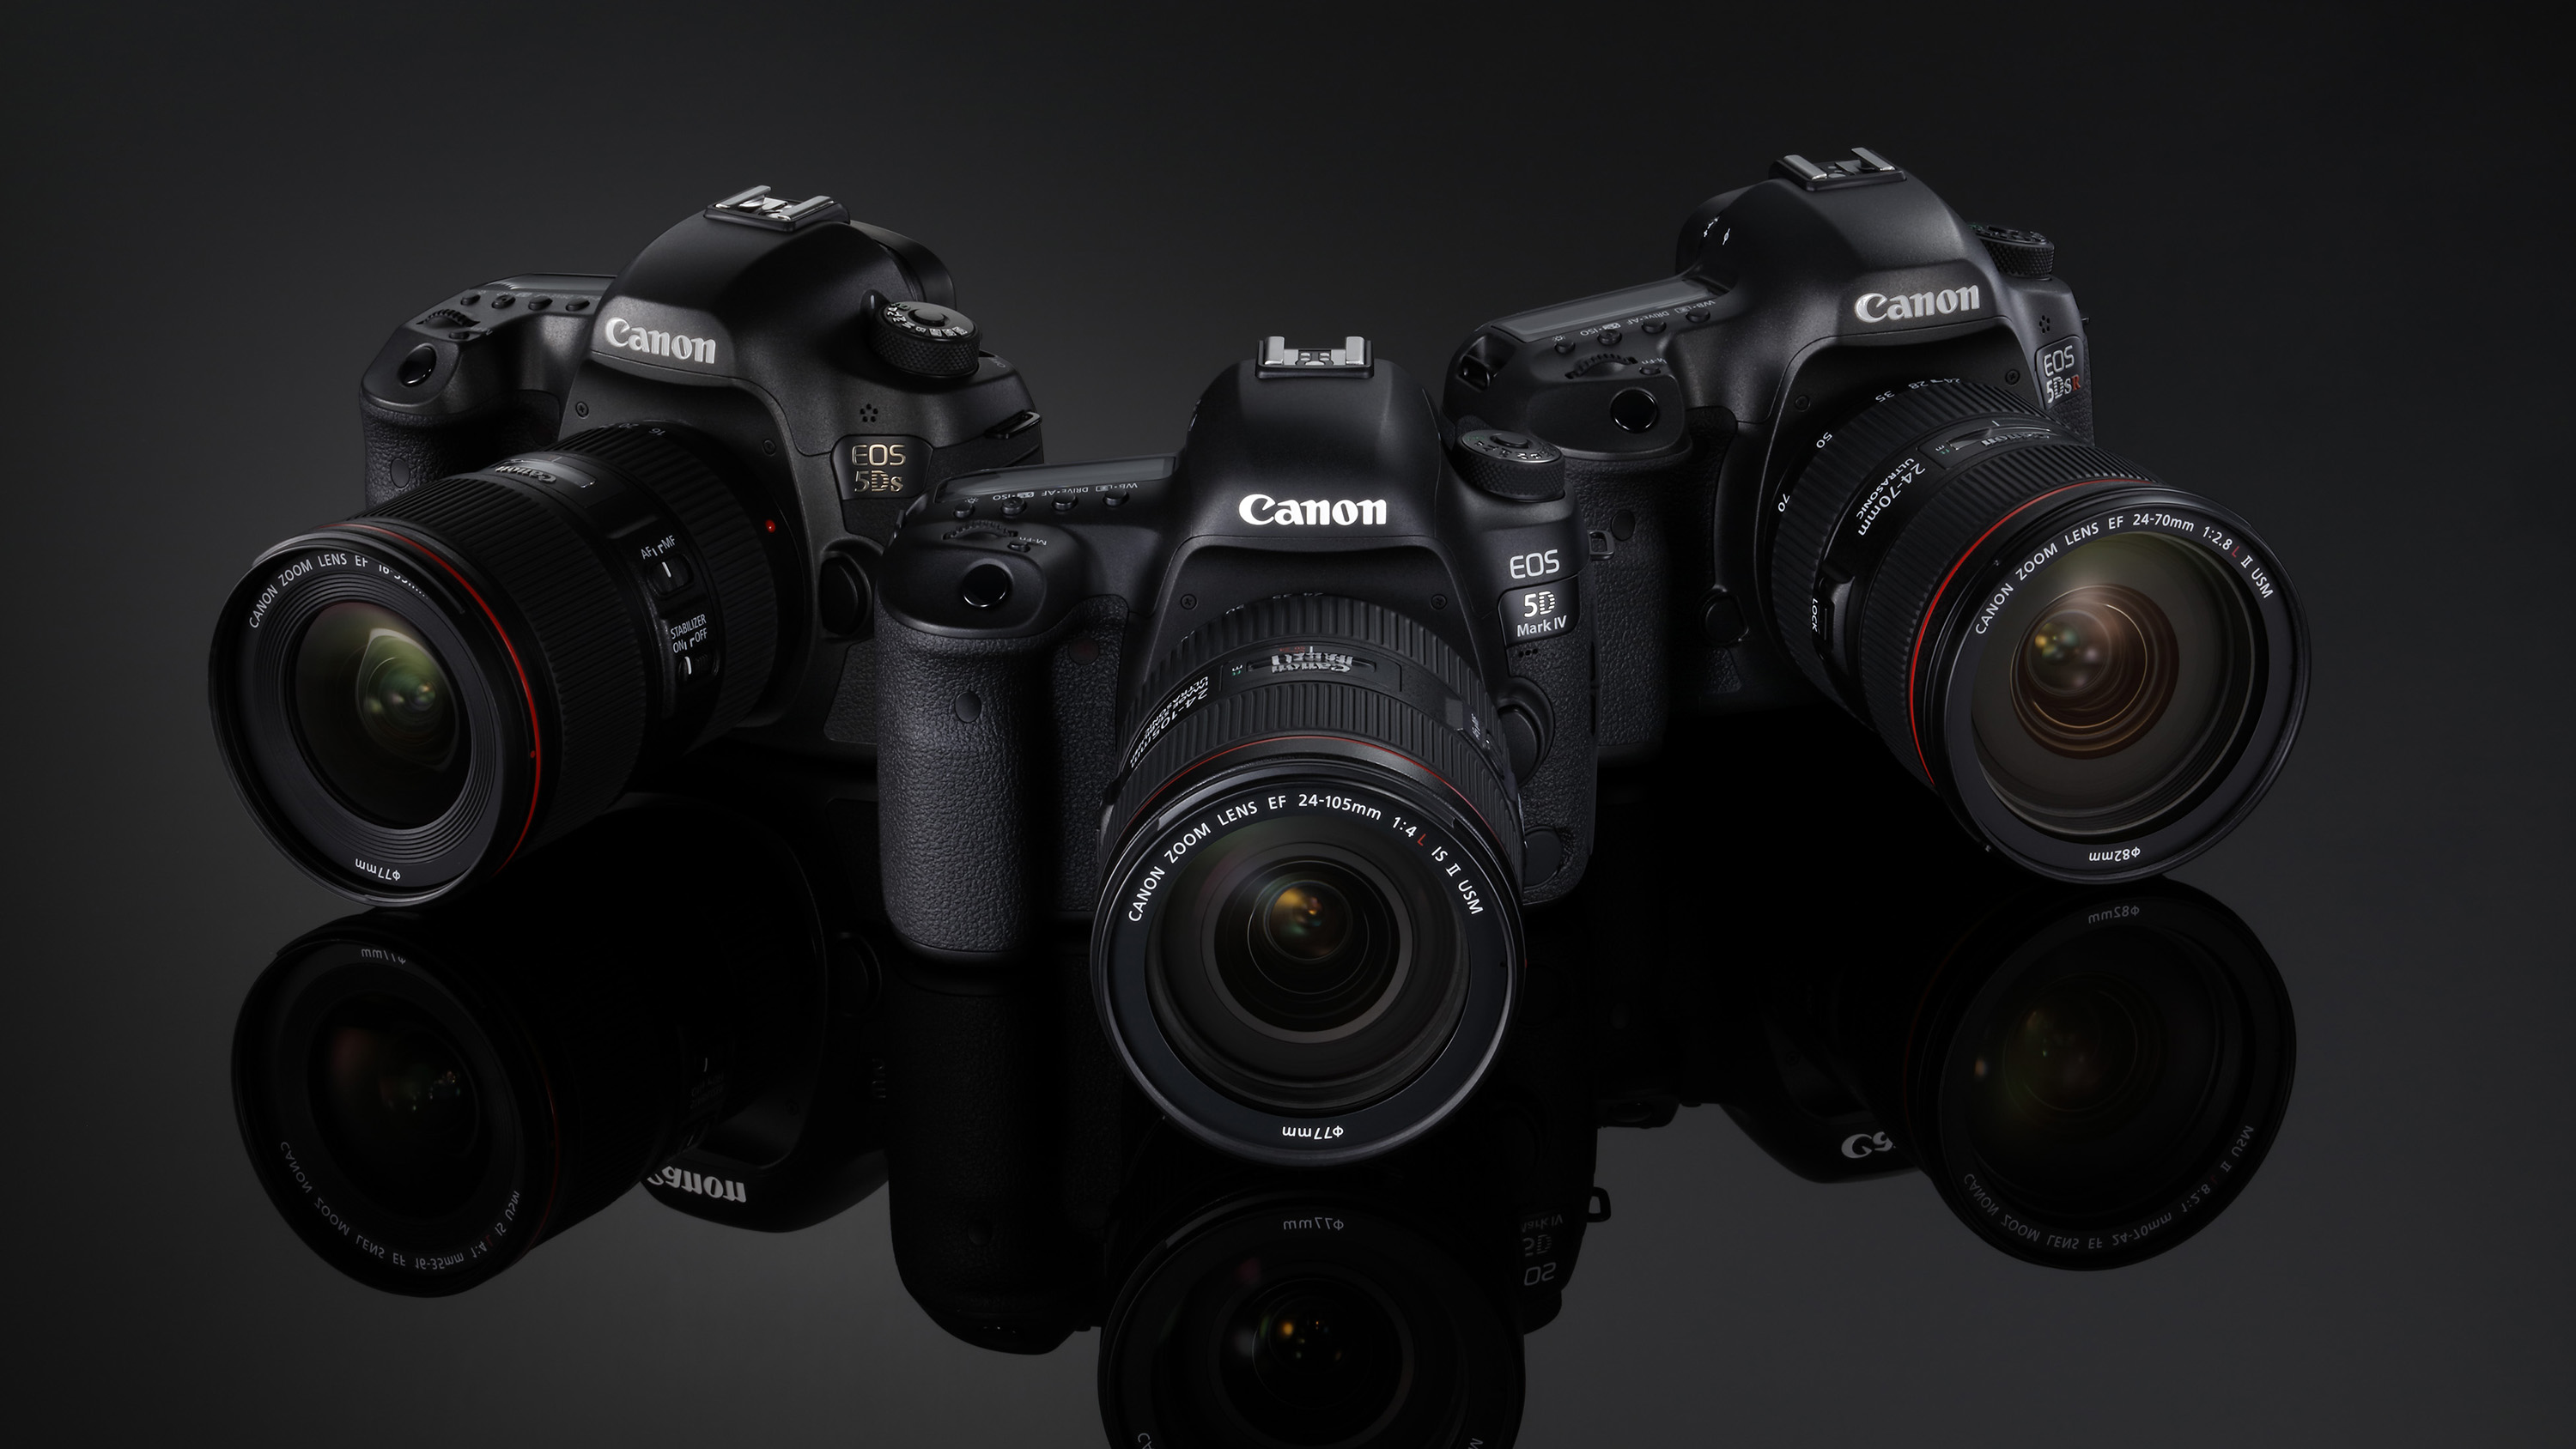 The 10 best DSLRs you can buy right now